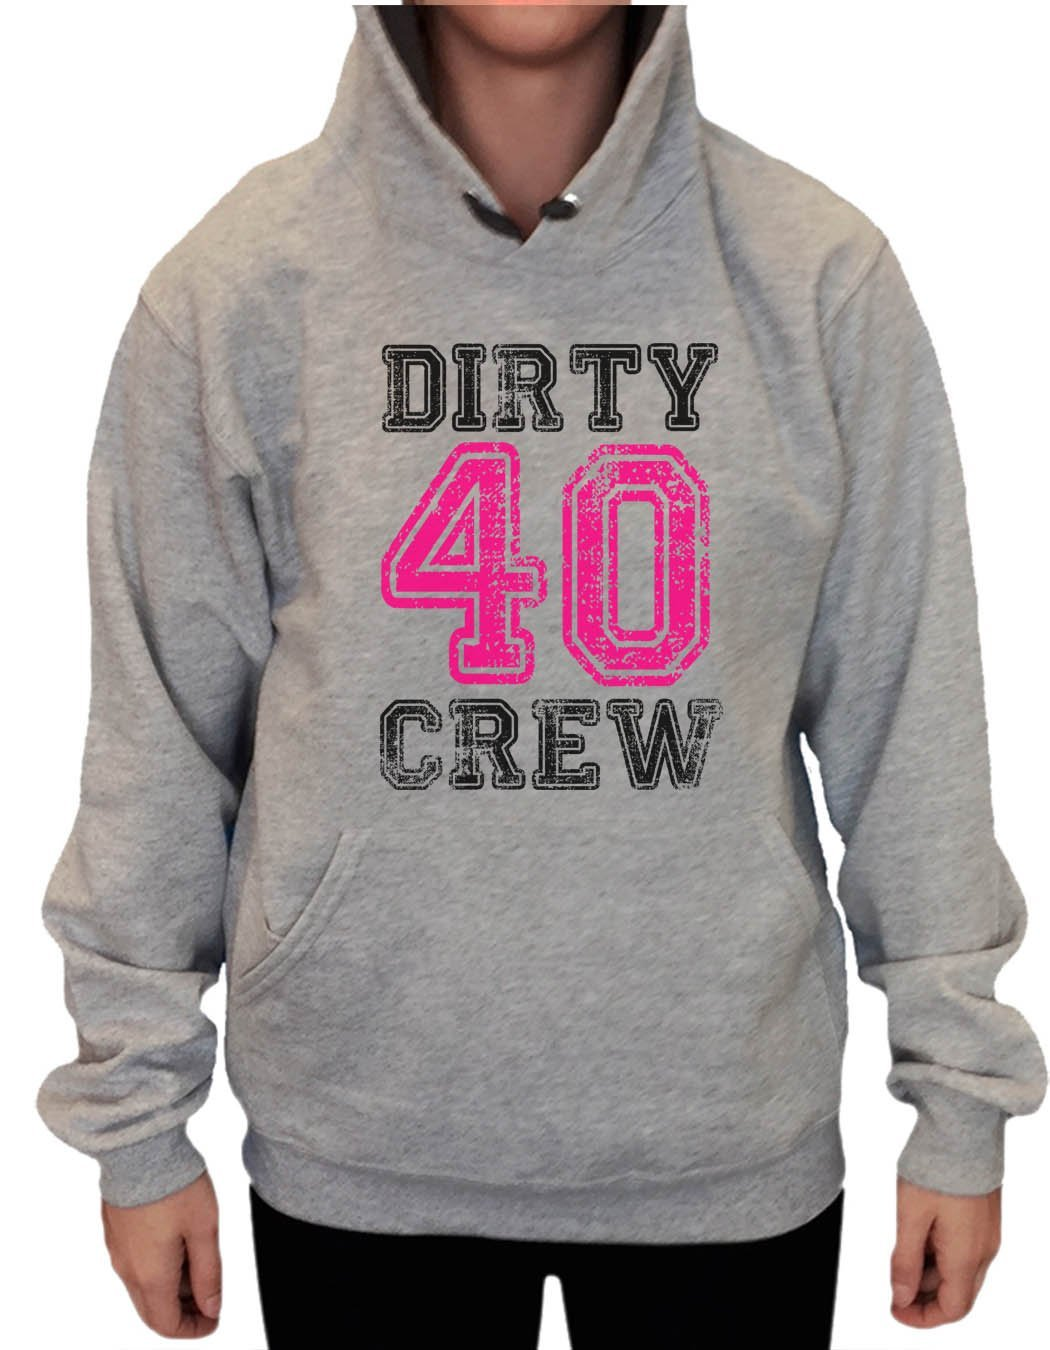 UNISEX HOODIE - Dirty Forty Crew - FUNNY MENS AND WOMENS HOODED SWEATSHIRTS - 2146 Funny Shirt Small / Heather Grey